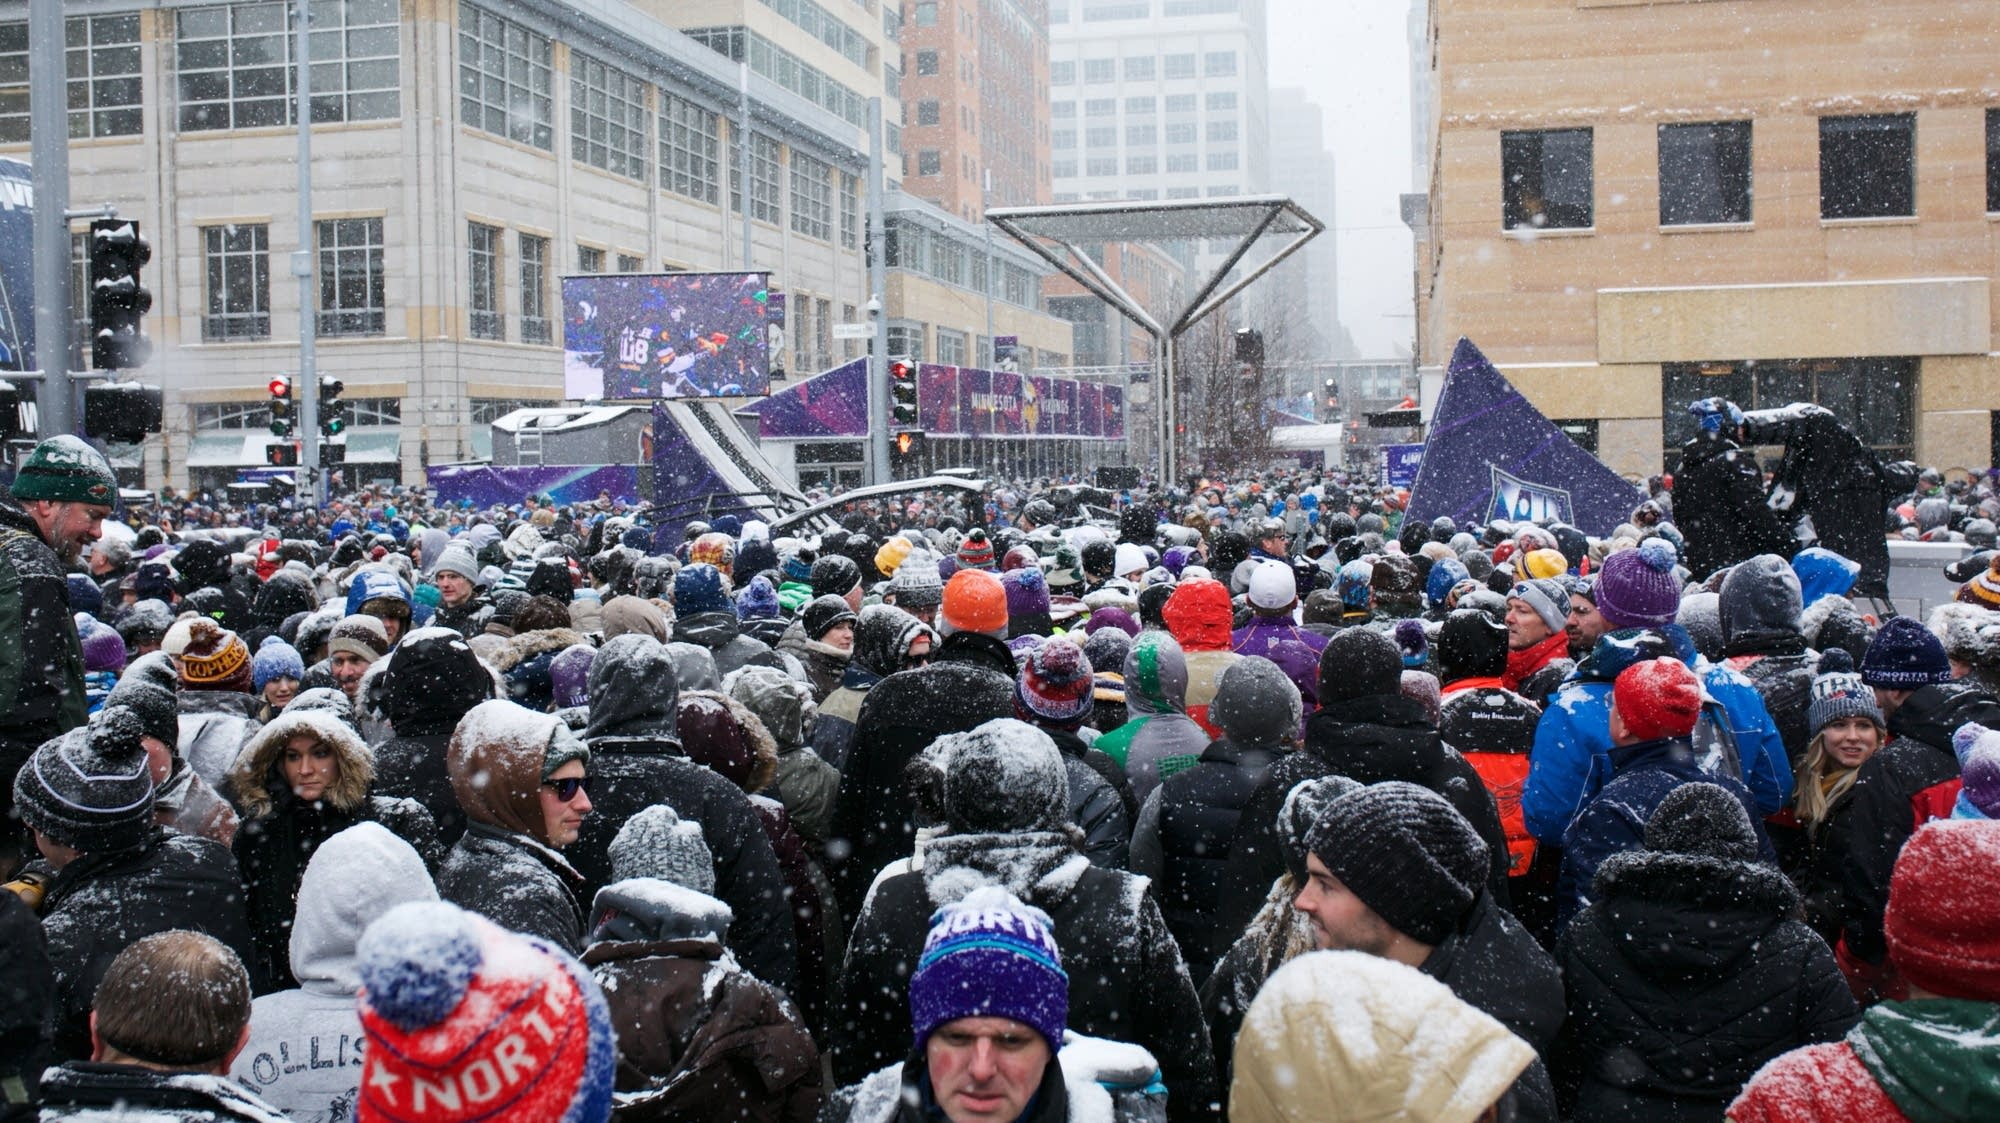 A snowy Super Bowl in downtown Minneapolis